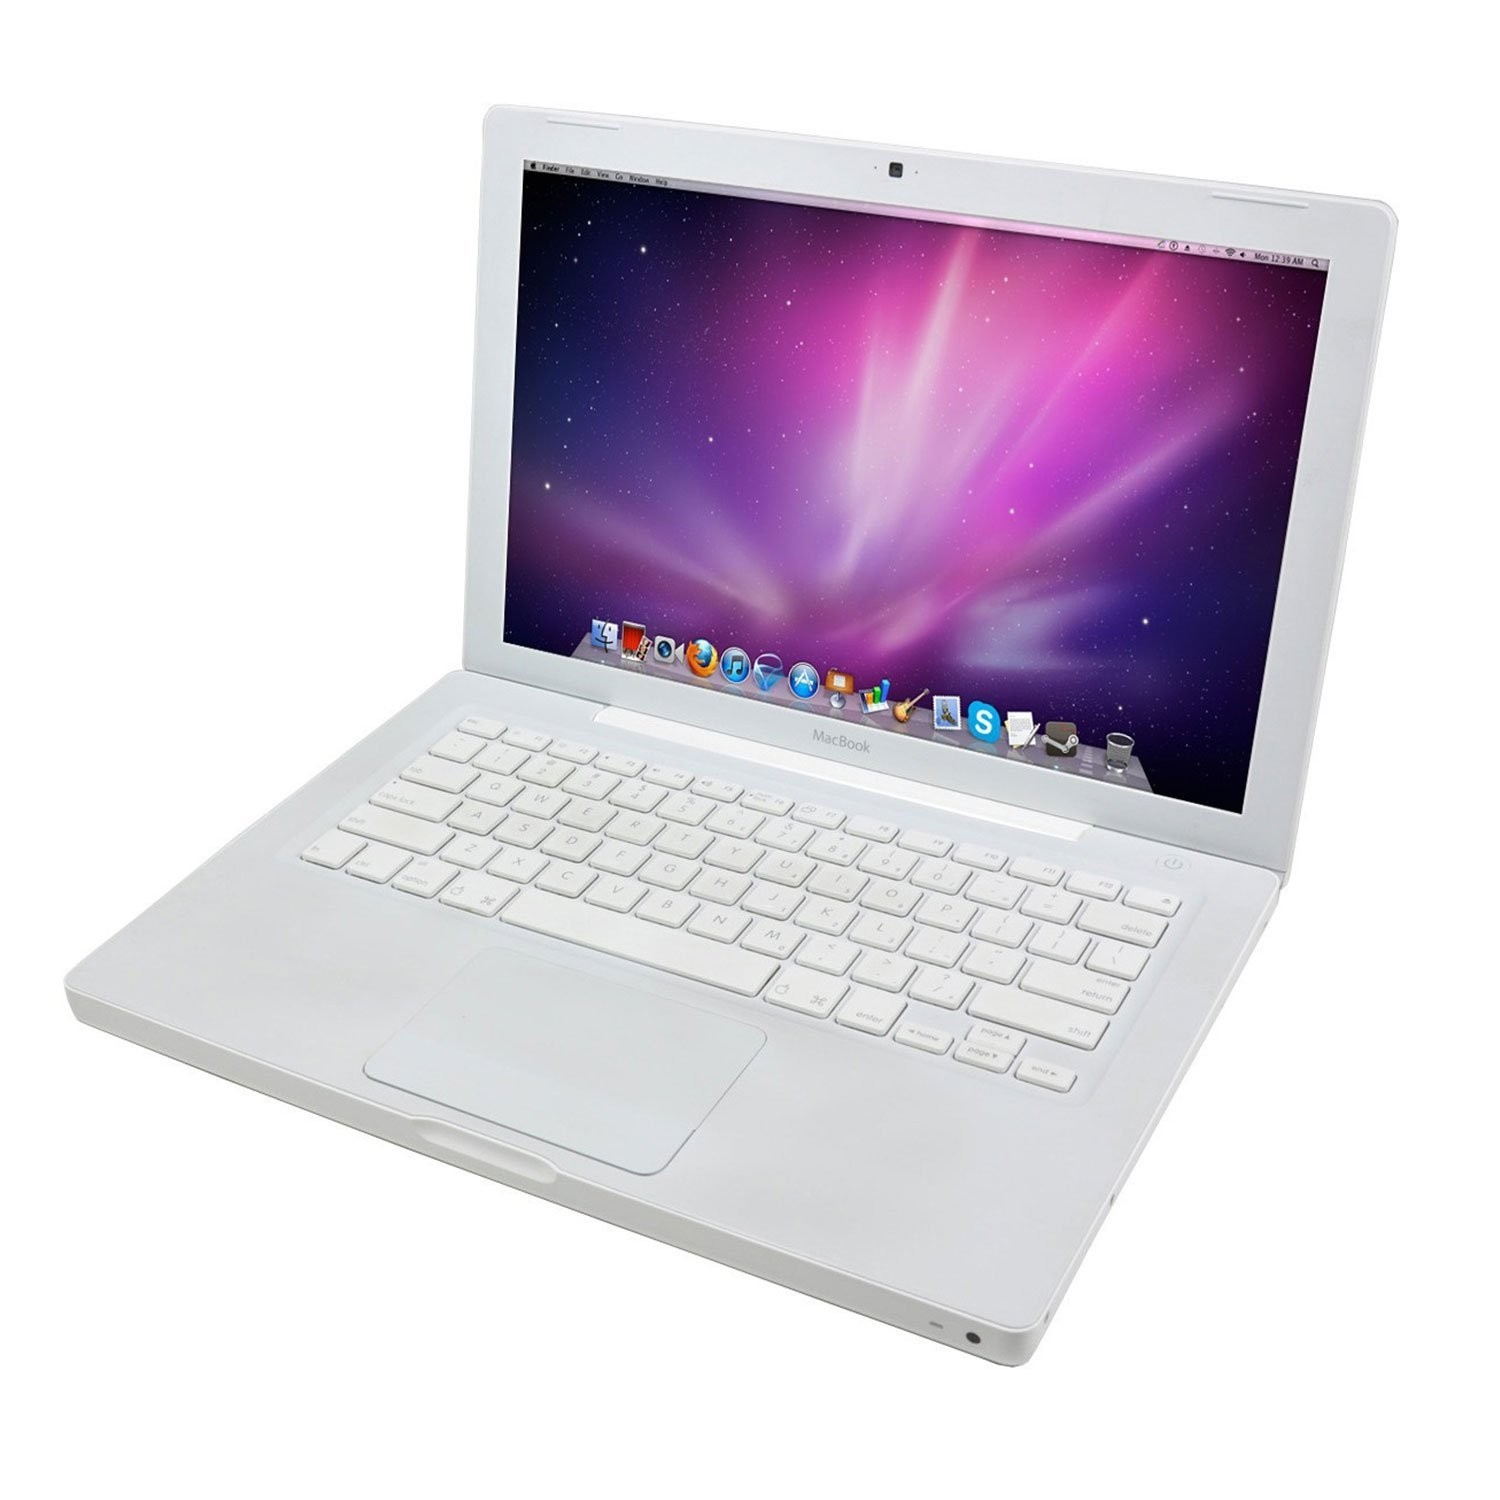 Buy the Apple MacBook A1181 White - 13.3